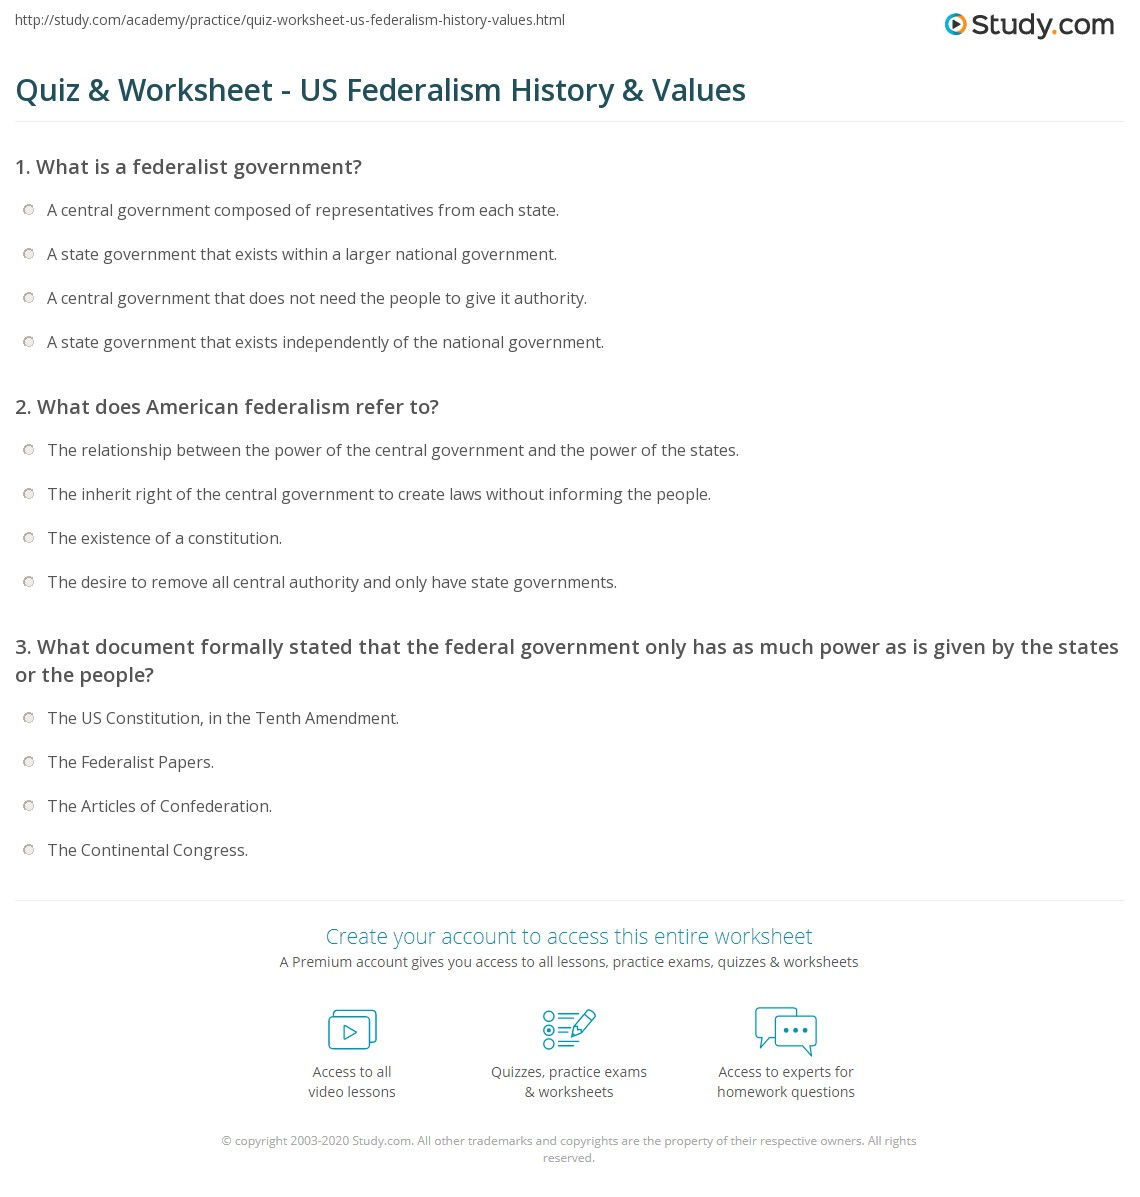 Quiz & Worksheet US Federalism History & Values